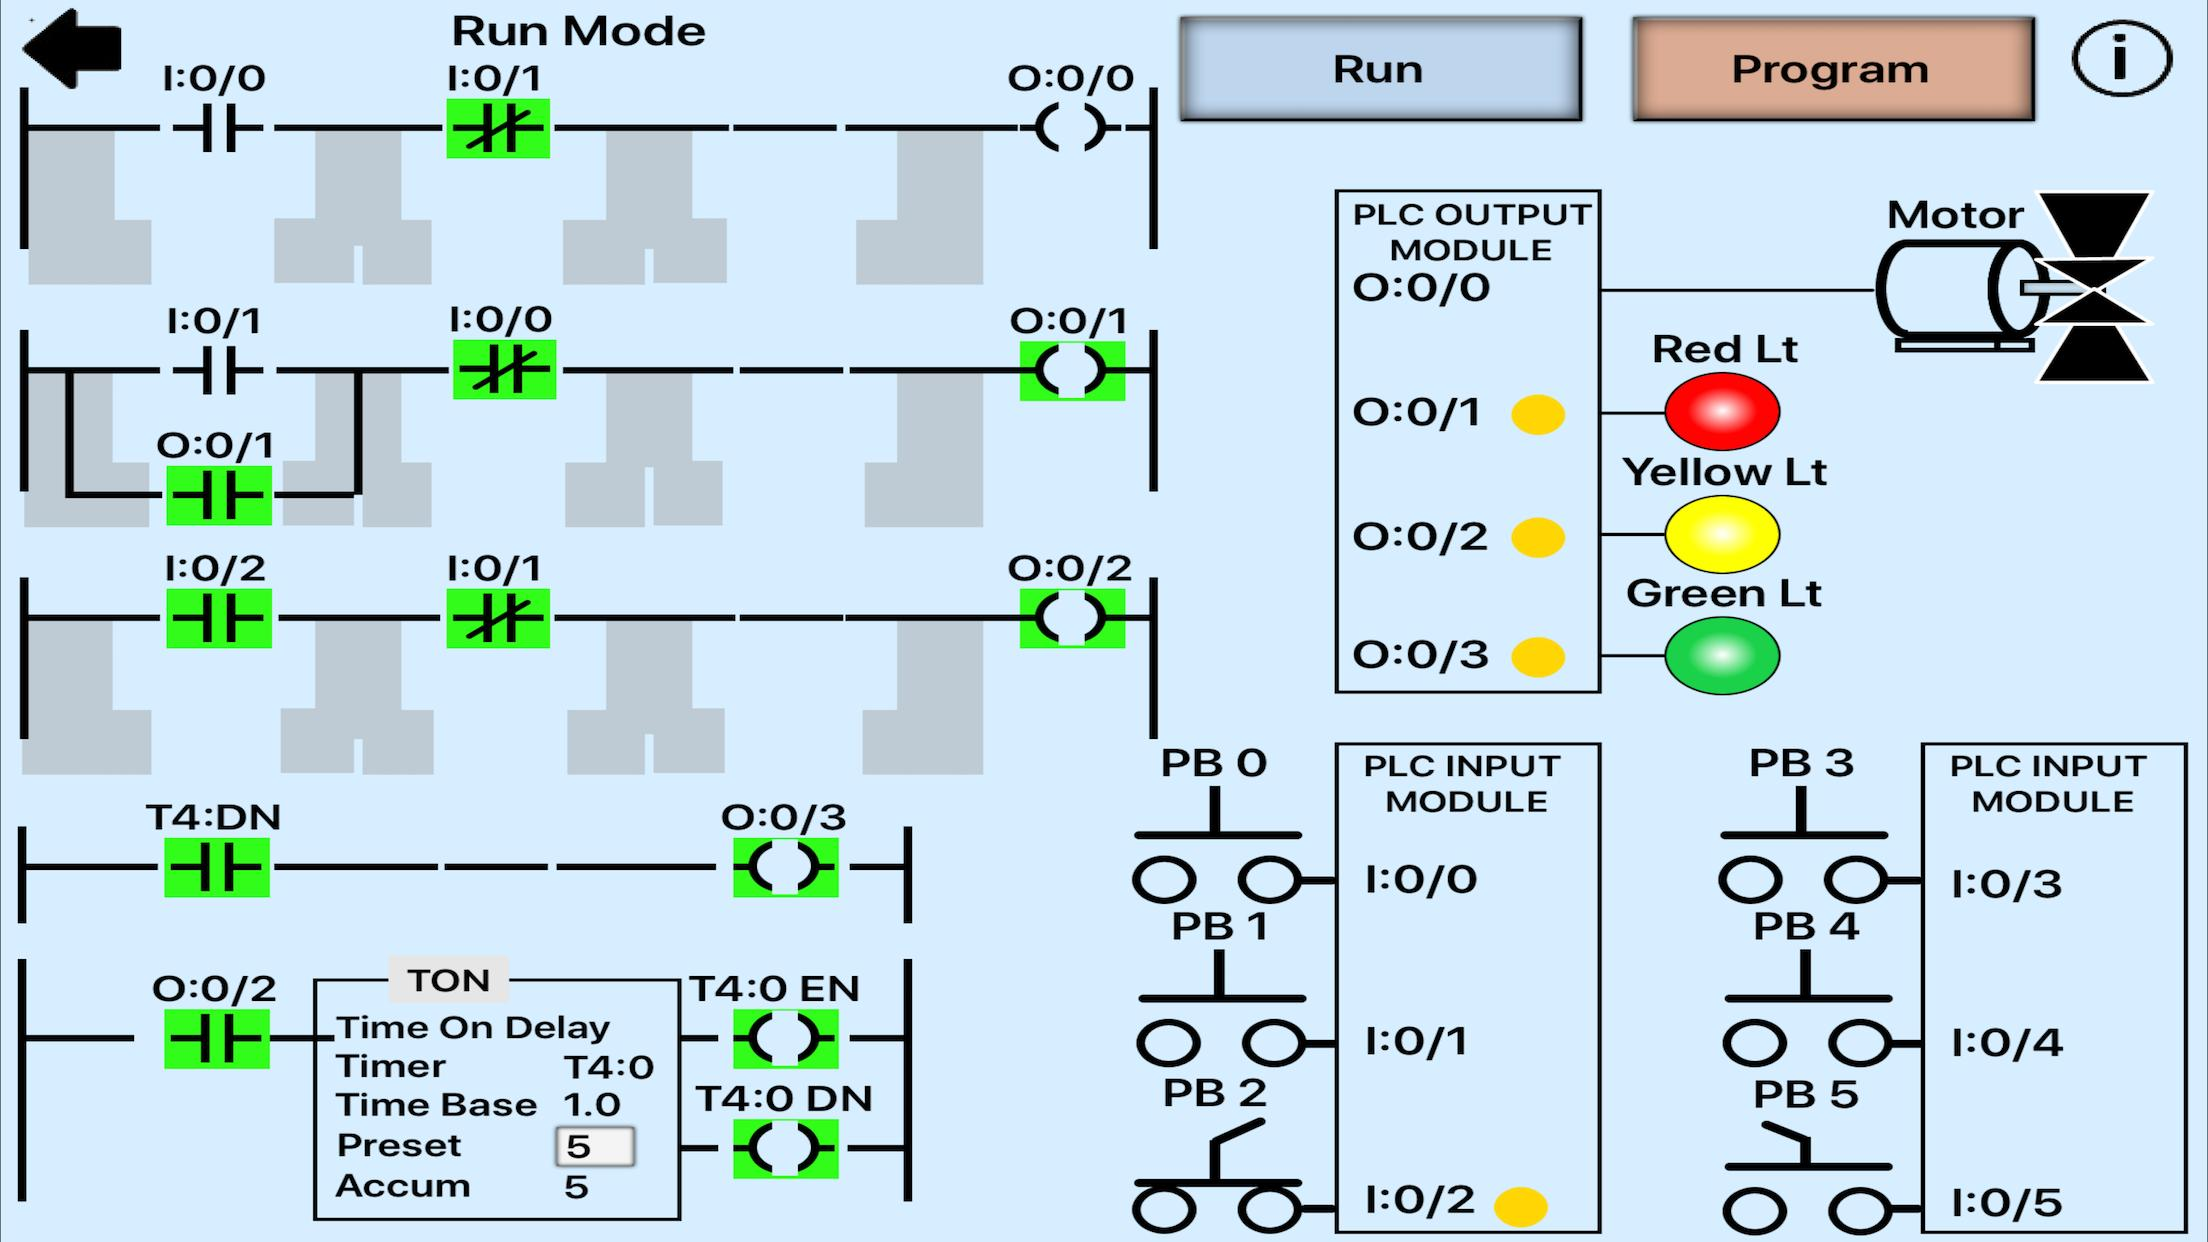 Plc Simulator Mechatronics Plc Ladder Logic Plc For Android Apk Download